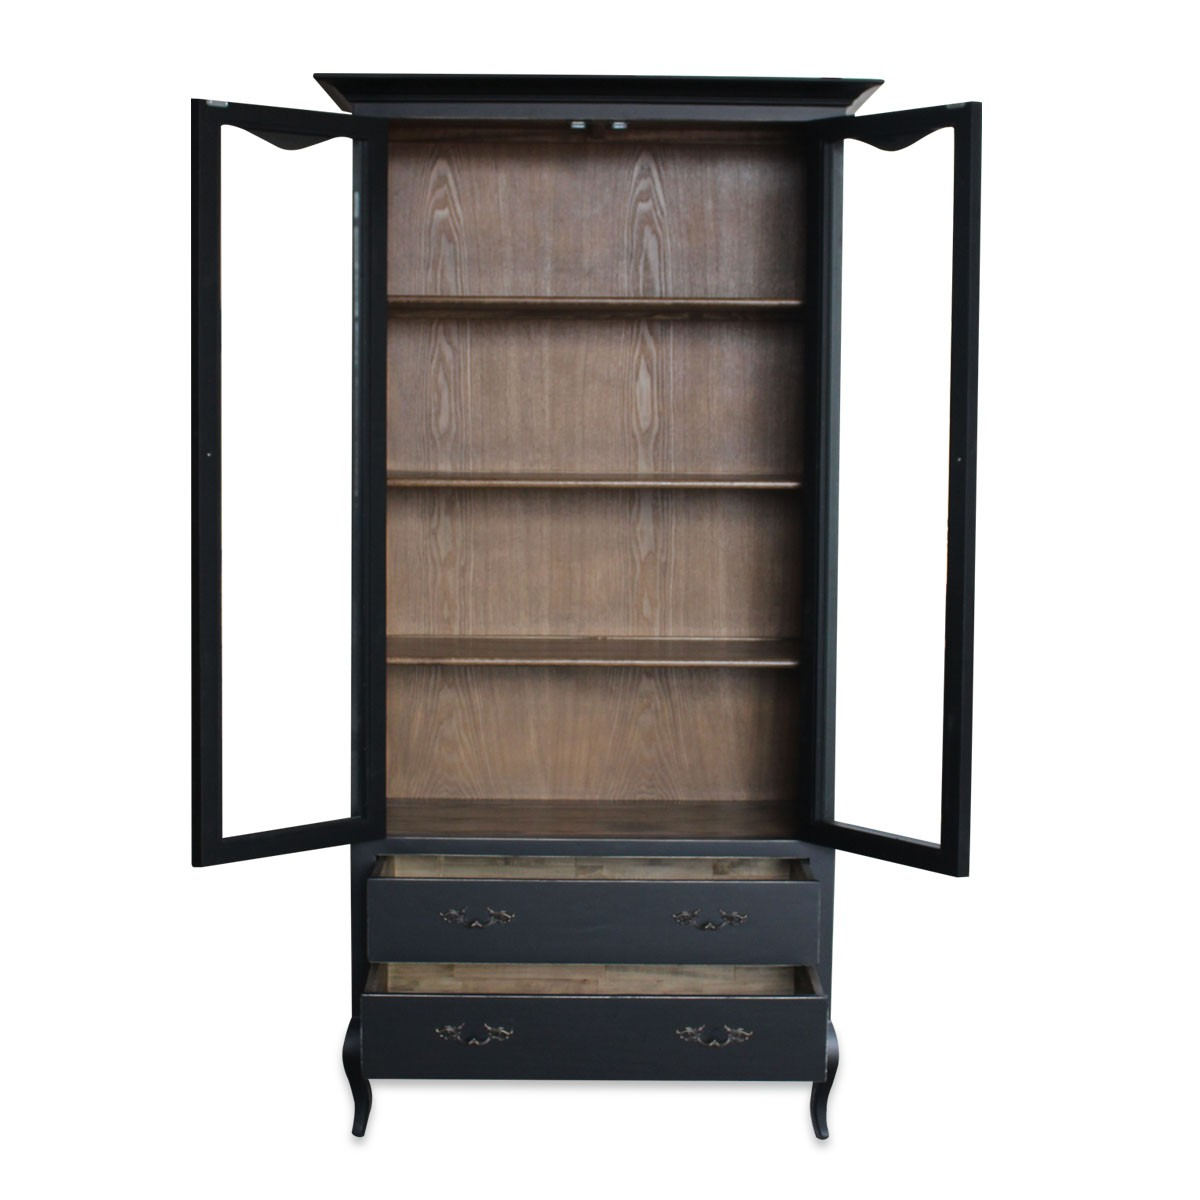 ... French Provincial Furniture Display Cabinet In Black ...